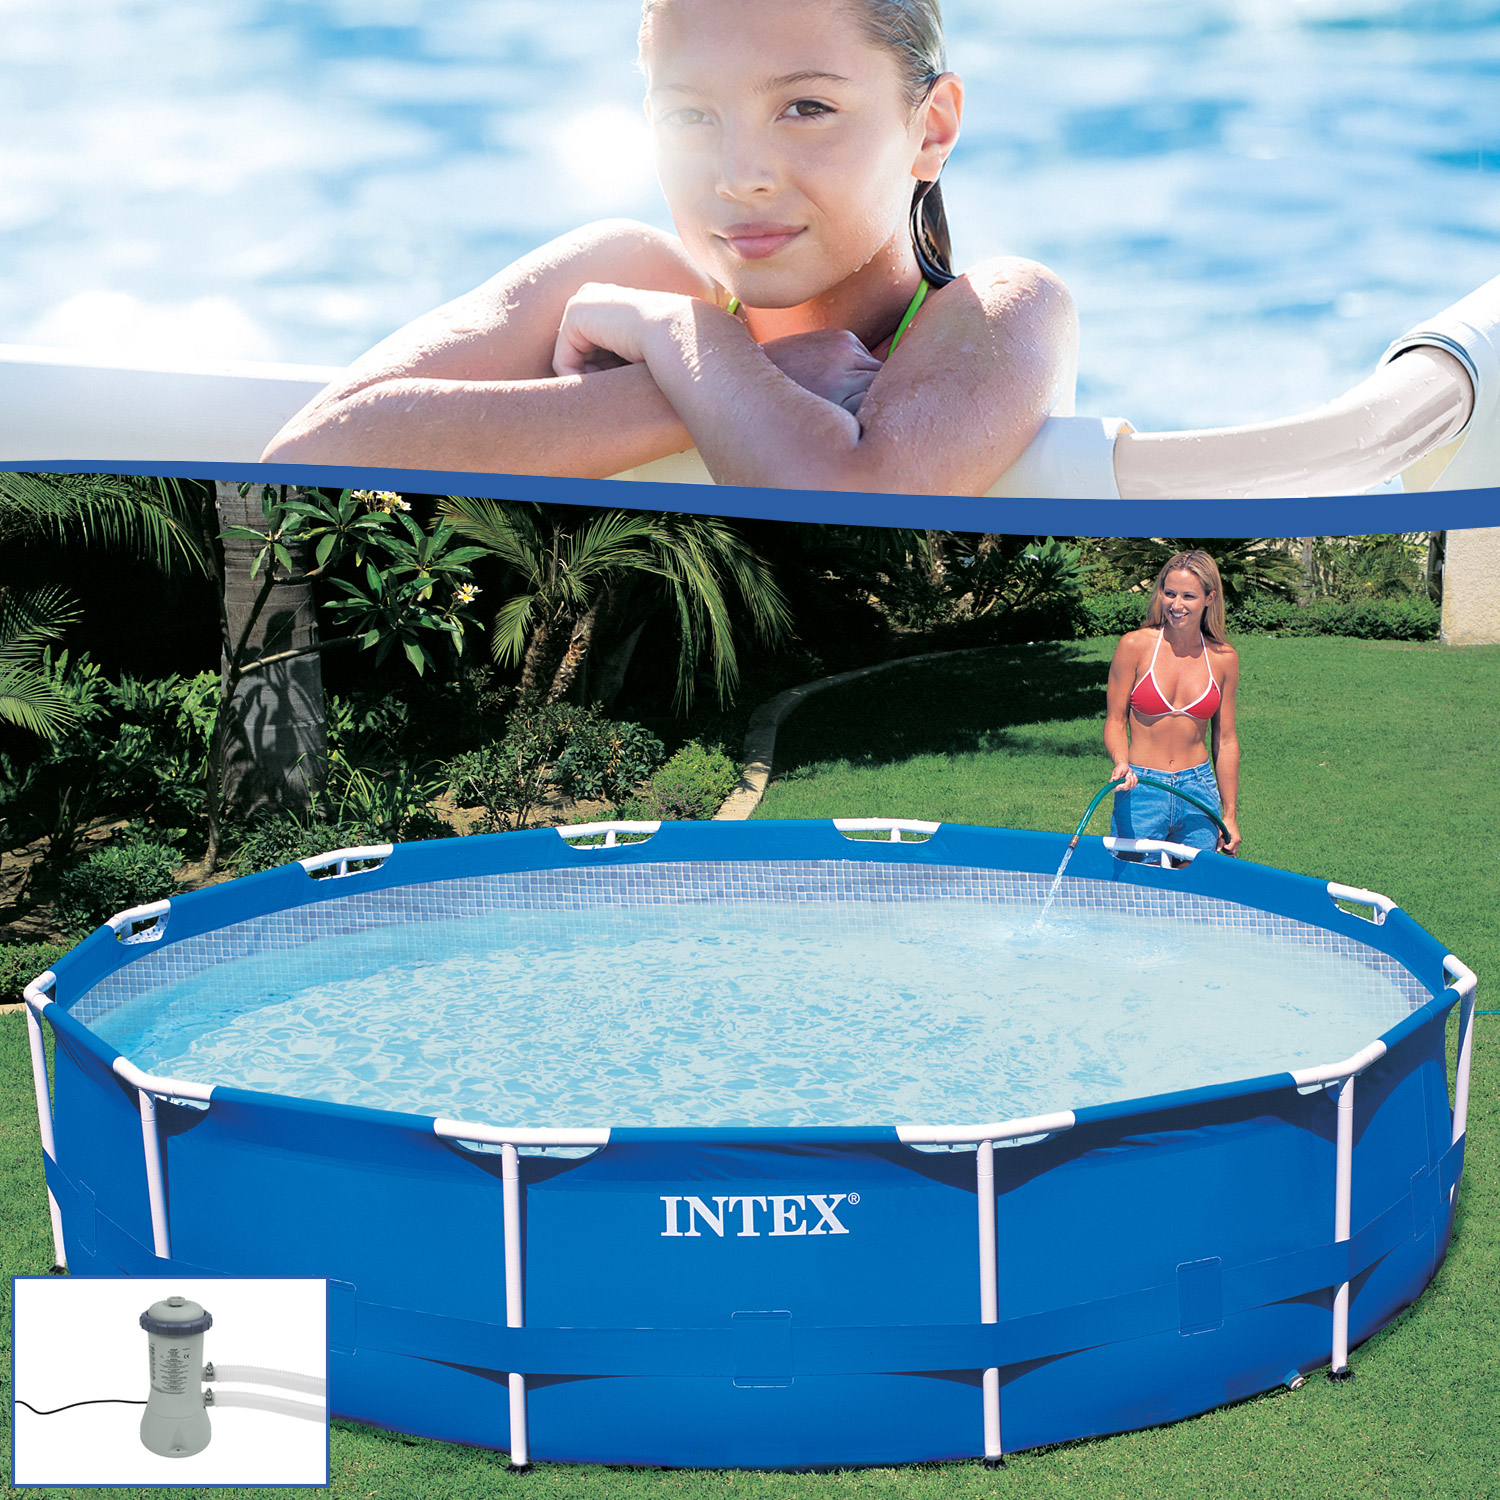 intex 366x76 stahlwand frame swimming pool schwimmbecken schwimmbad pumpe 28212. Black Bedroom Furniture Sets. Home Design Ideas